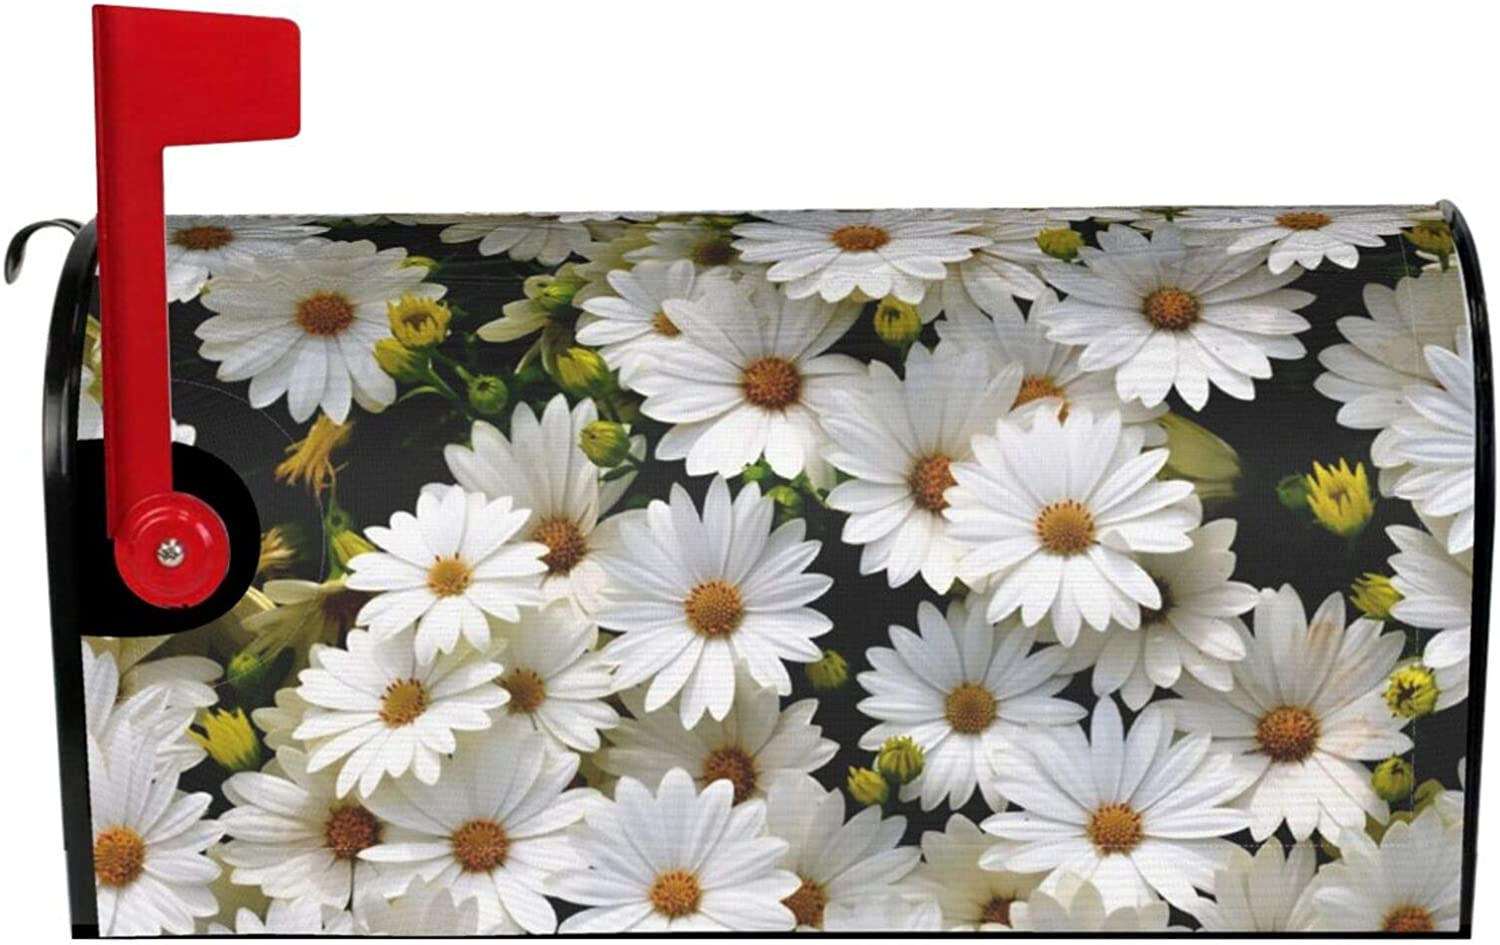 YX-Handsome Mailbox Cover Magnetic Daisy Flower Mailbox Wraps Post Letter Box Covers Garden Yard Home Decor Standard Size 18